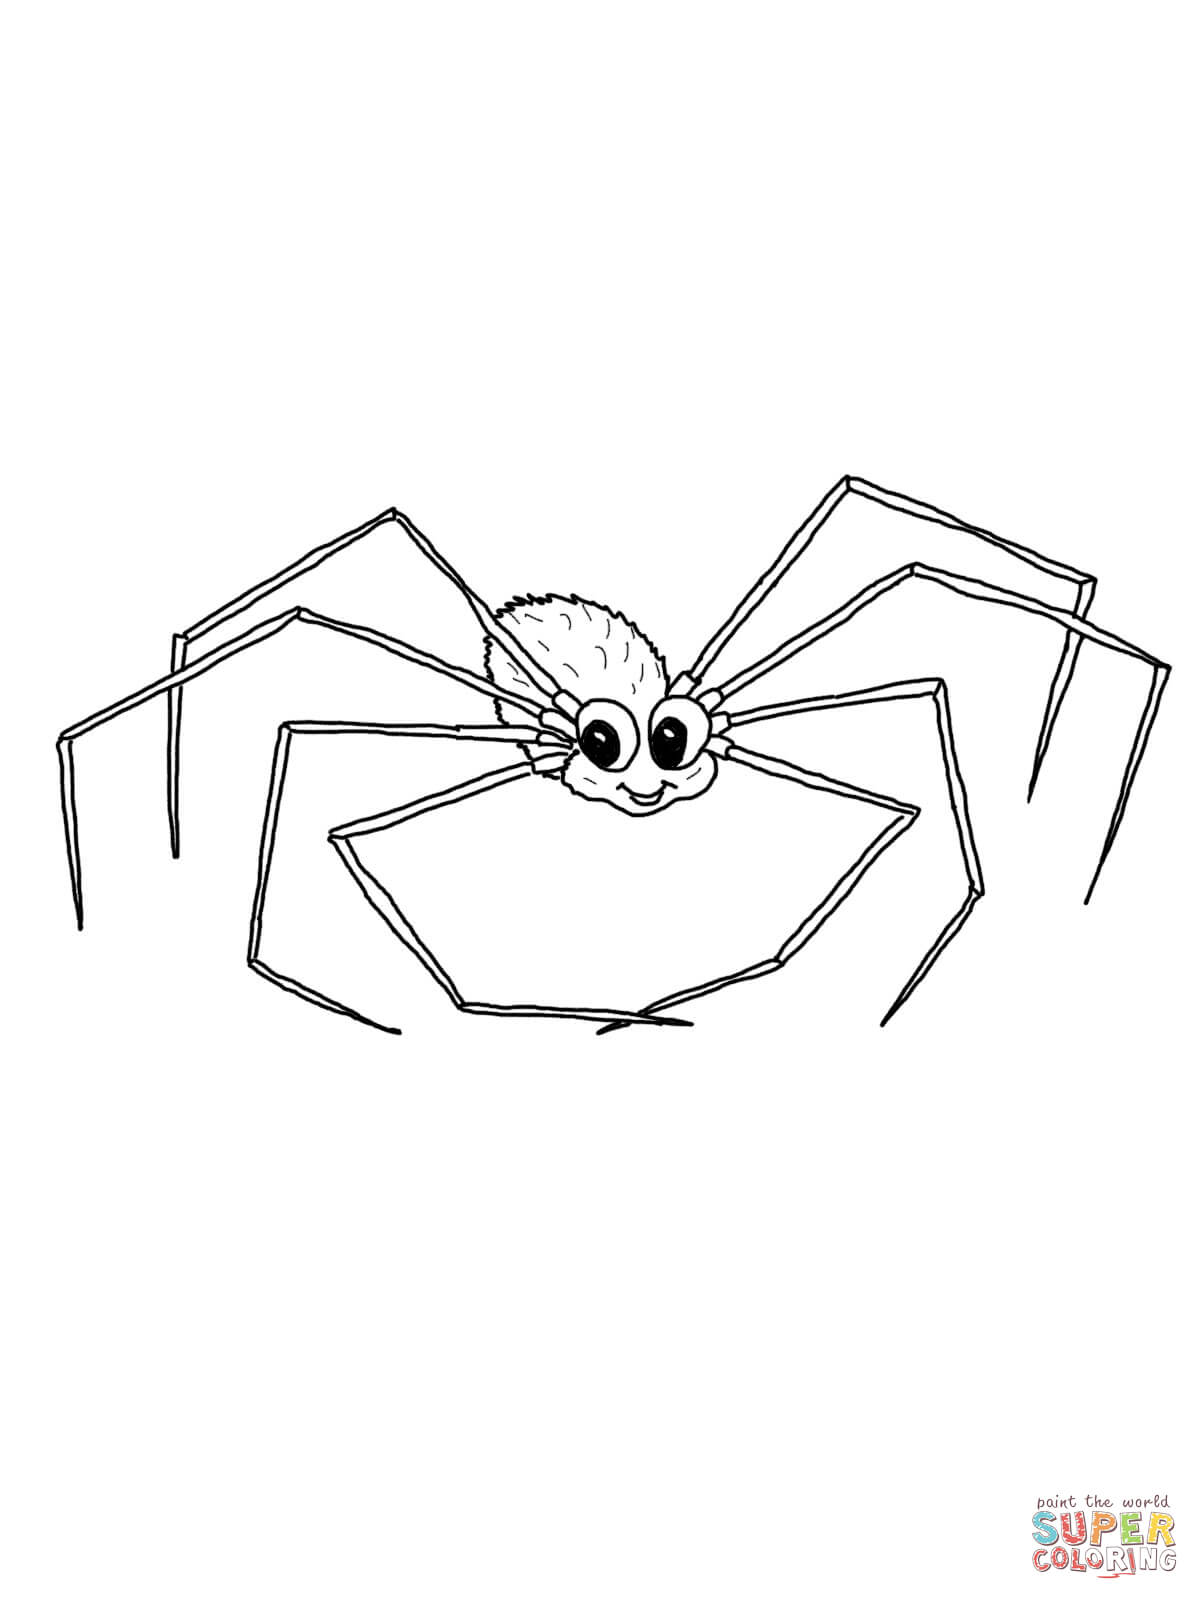 Cute Daddy Long Legs coloring page.